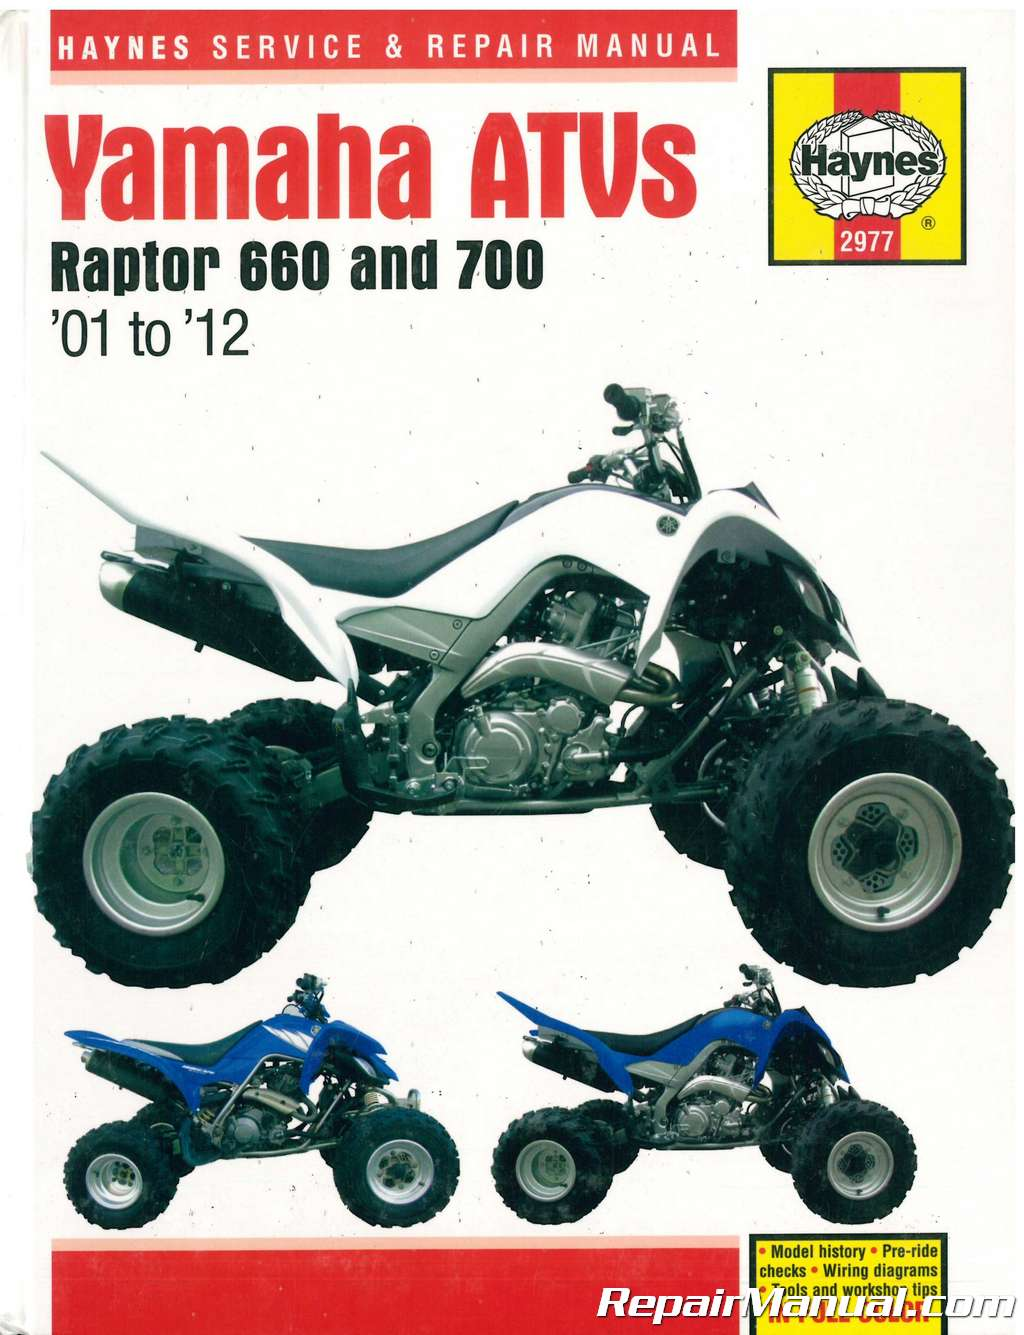 Wiring Diagram For A Yamaha Raptor 2012 Electrical Schematics Fuse Box 660 700 2001 Atv Repair Manual By Haynes Grizzly